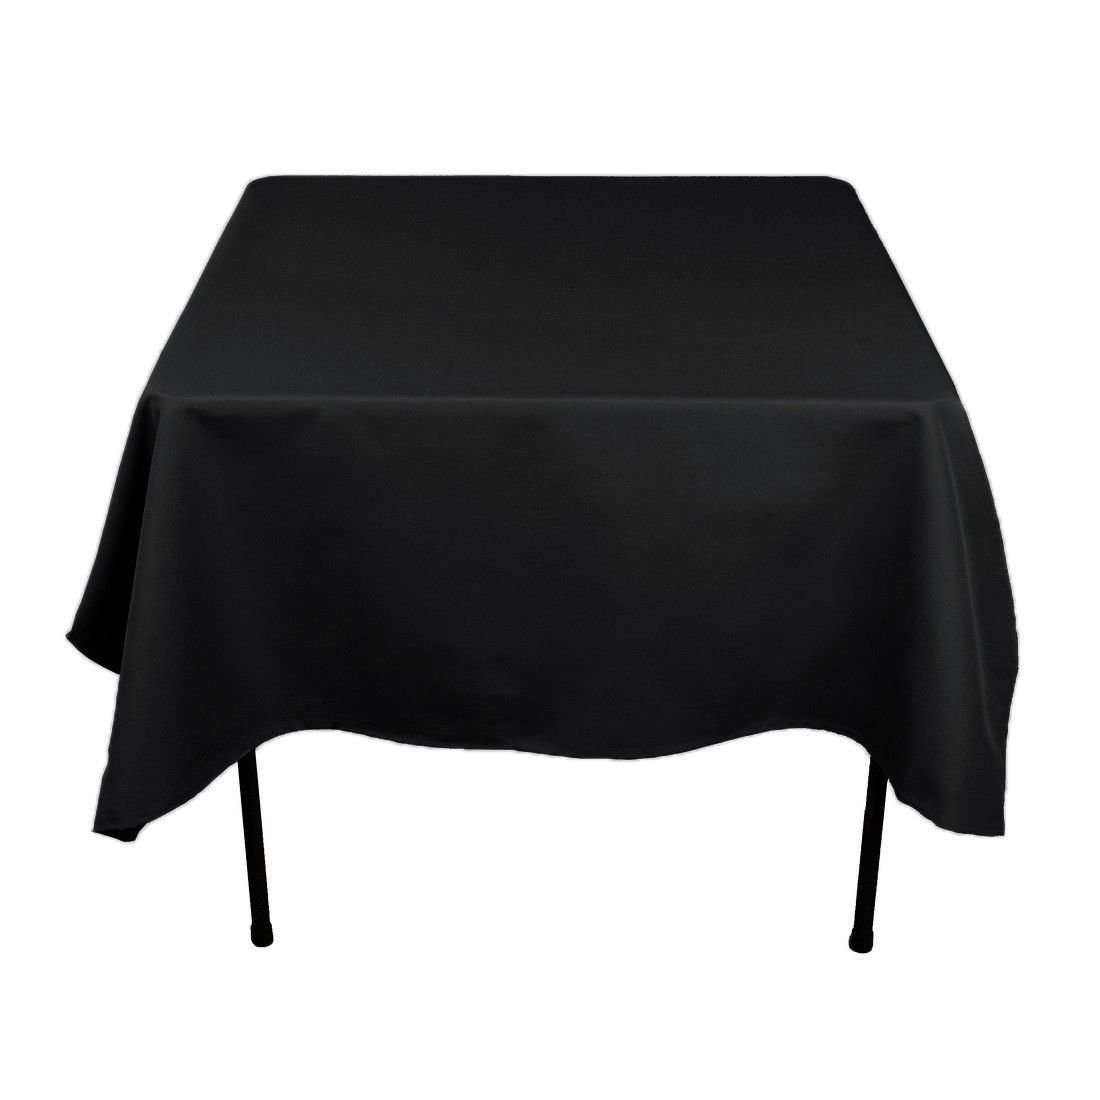 Gee Di Moda Square Tablecloth - 70 x 70 Inch - Black Square Table Cloth for Square or Round Tables in Washable Polyester - Great for Buffet Table, Parties, Holiday Dinner, Wedding & More